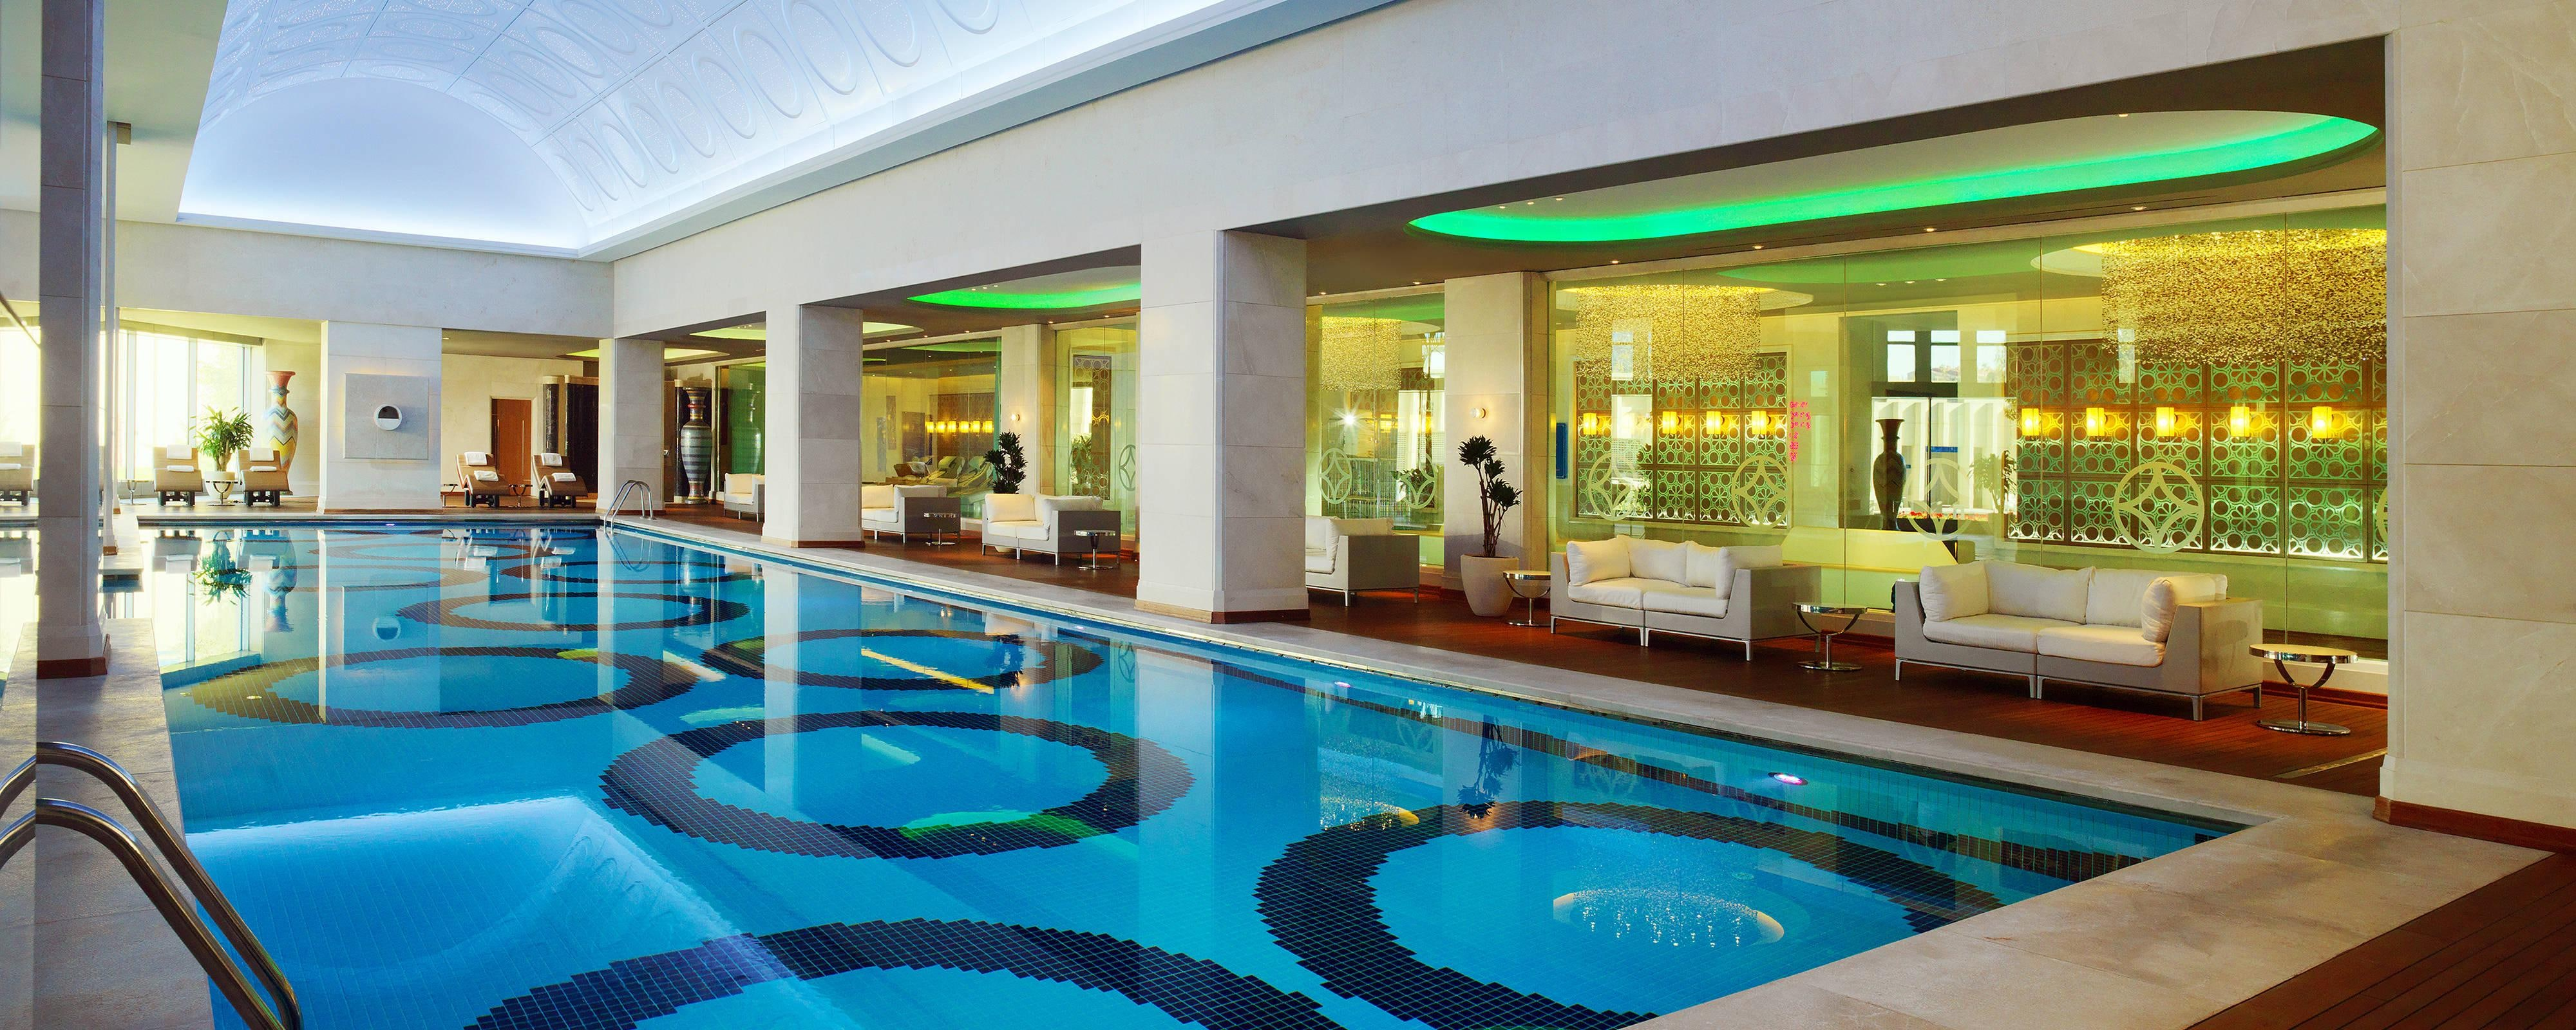 Ankara Hotel with Indoor Pool